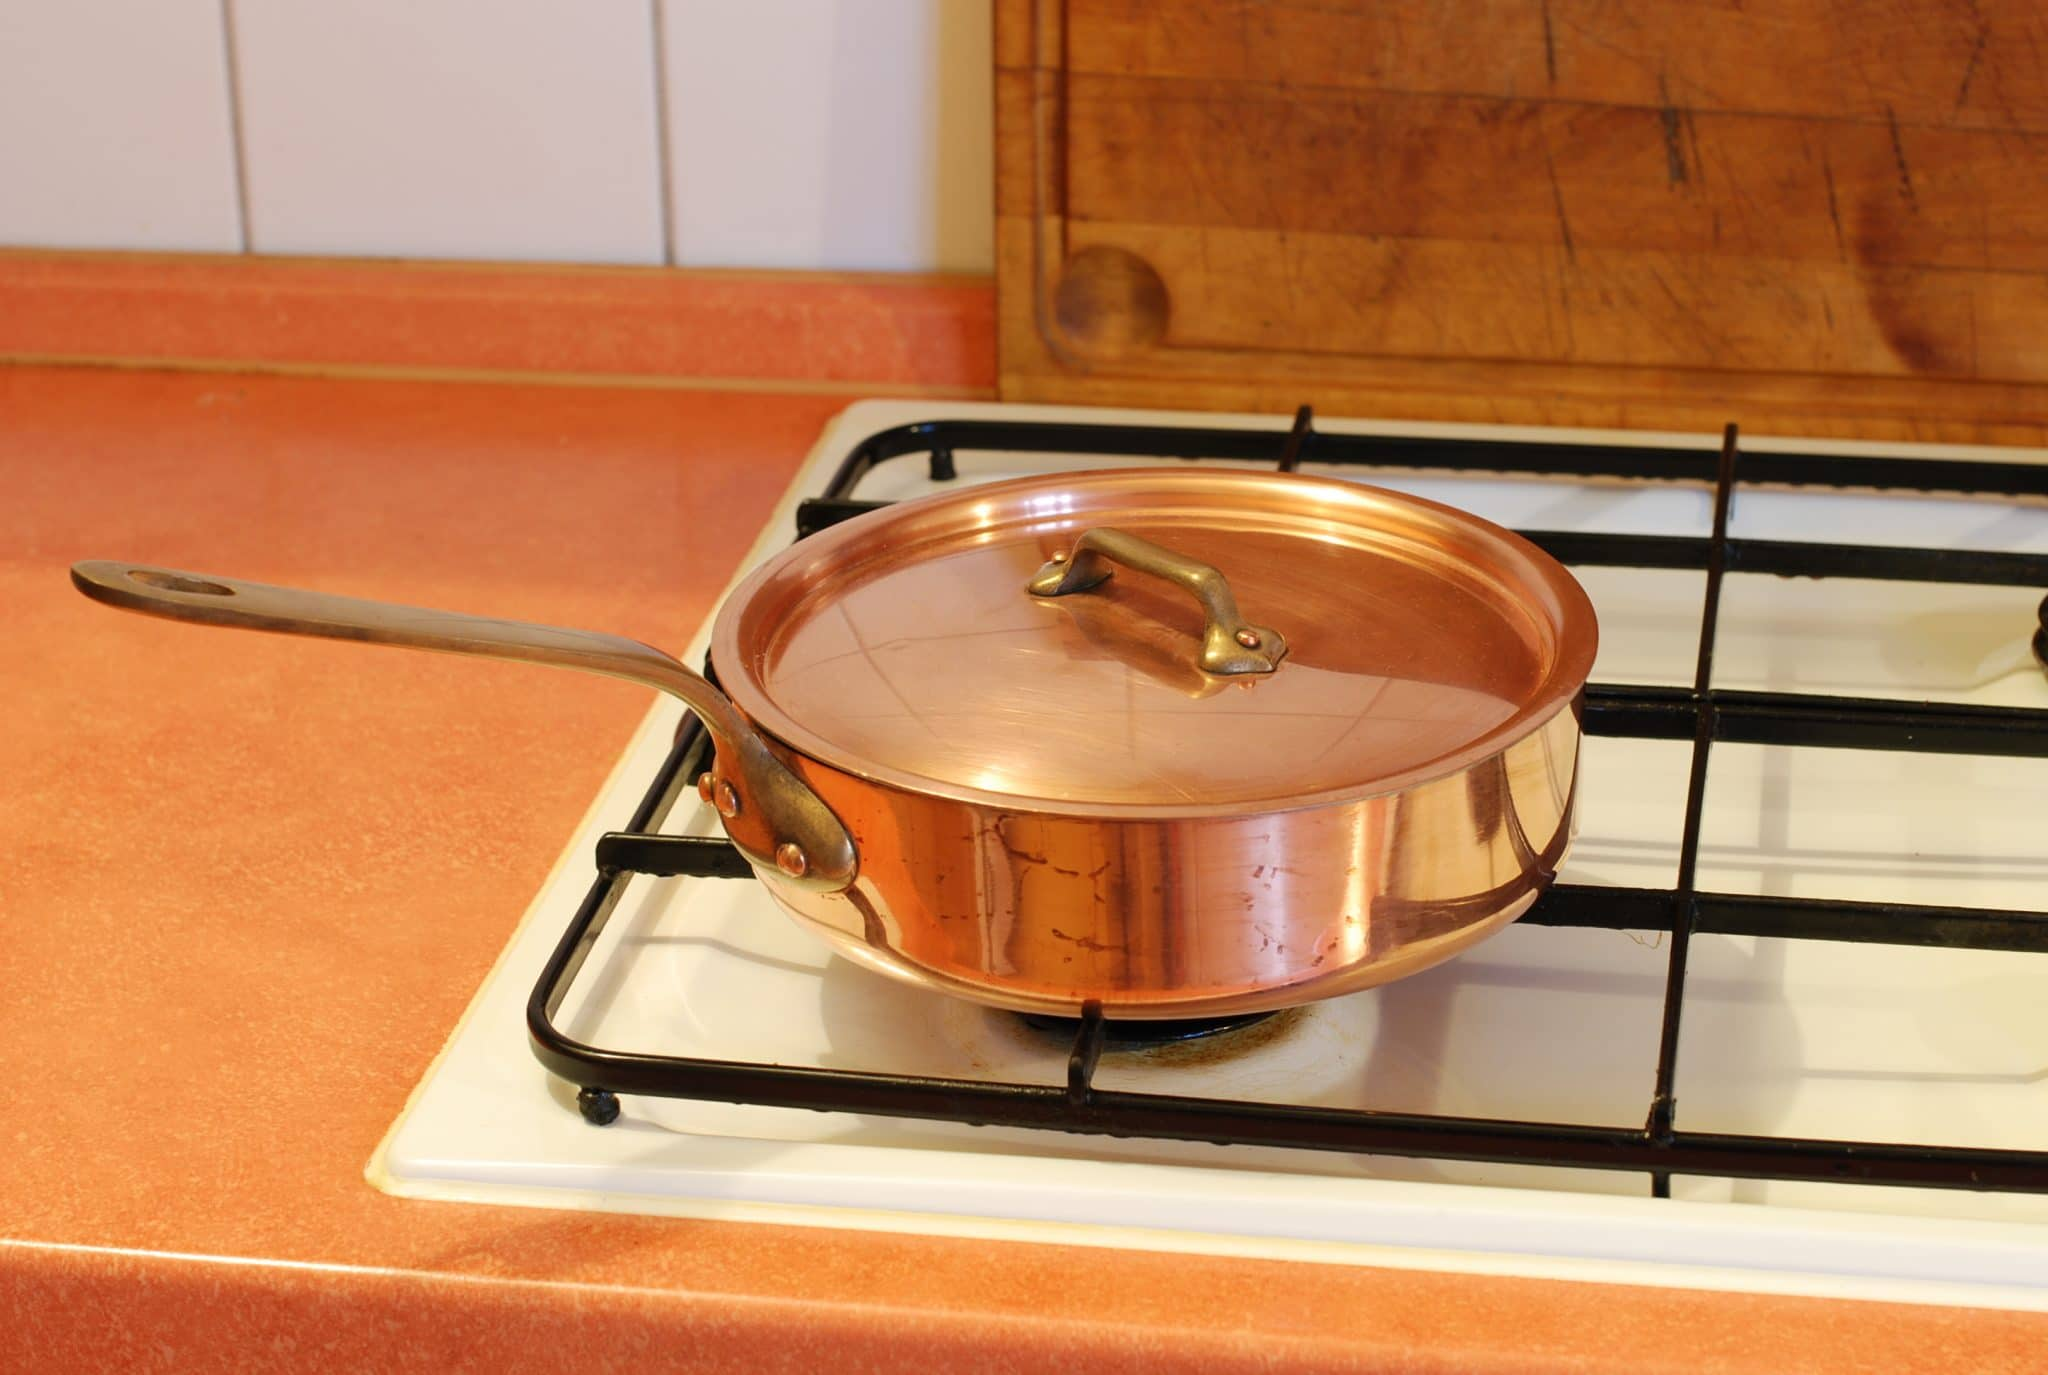 stainless steel kitchen pots and pans, kitchen saute pan